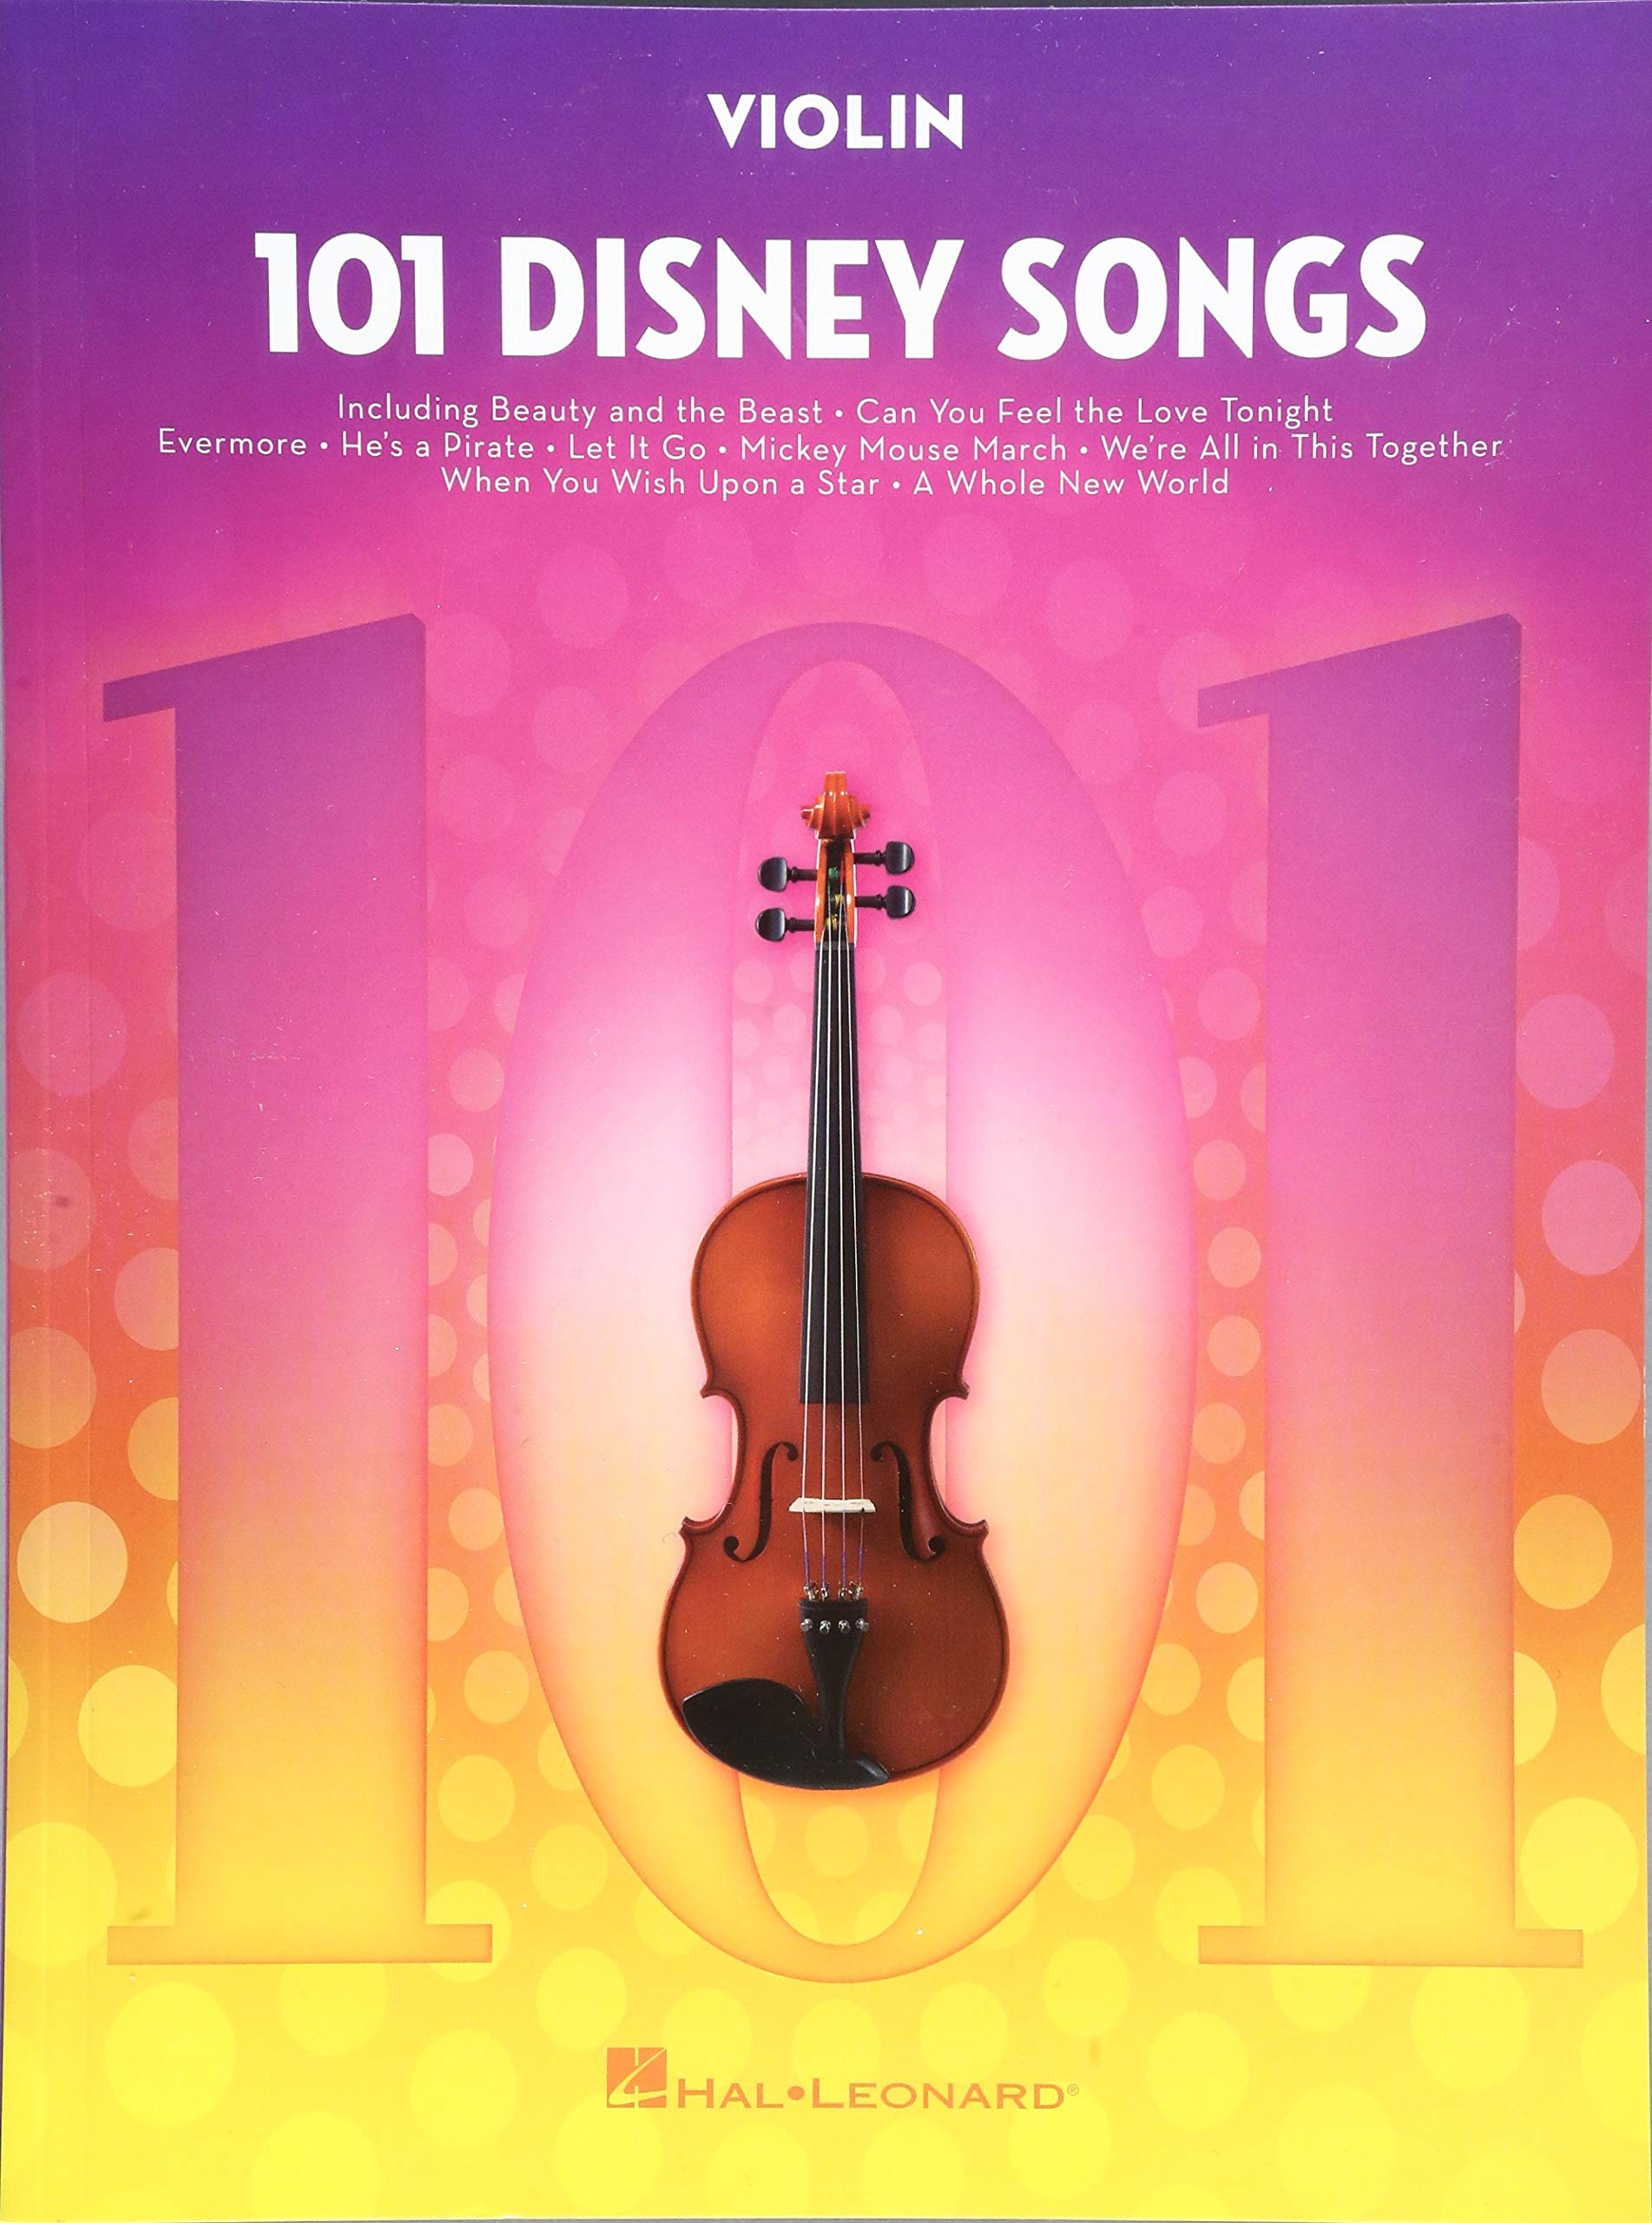 27 COLLECTION ABOUT VIOLIN HOW TO PLAY AND STORY Book On CD MAKE CARE